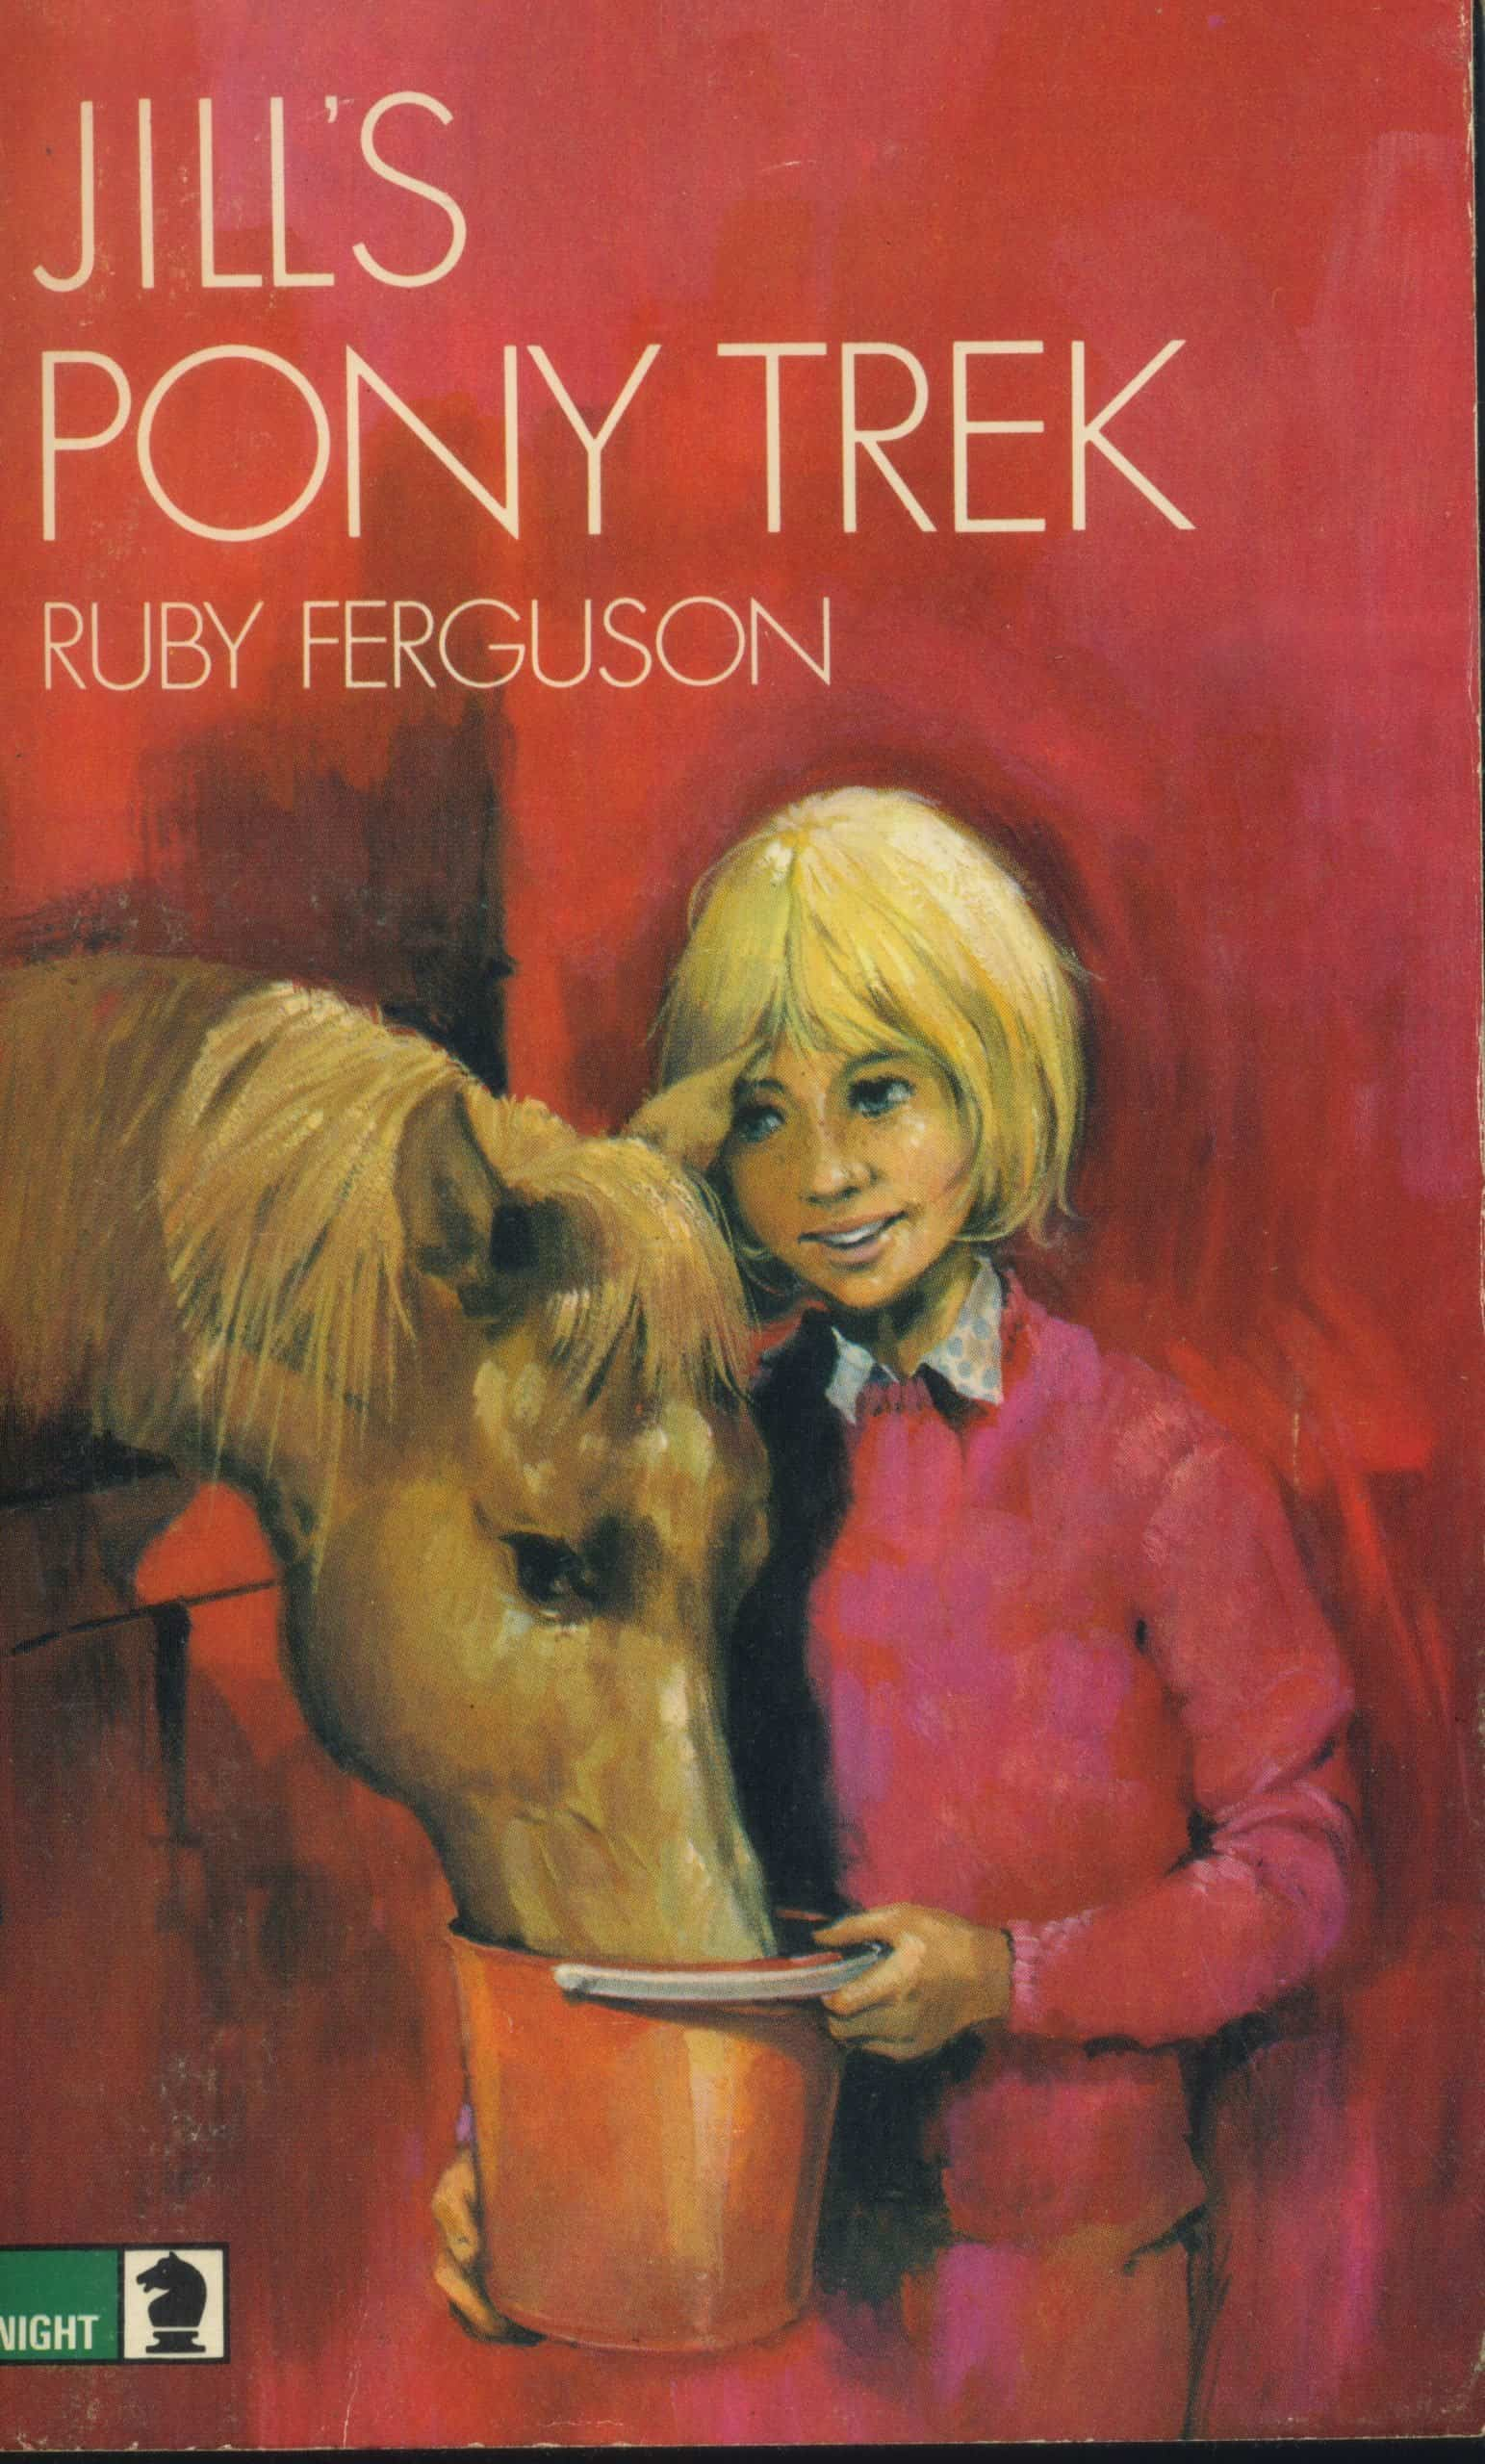 Jill's Pony Trek Book Ruby Ferguson